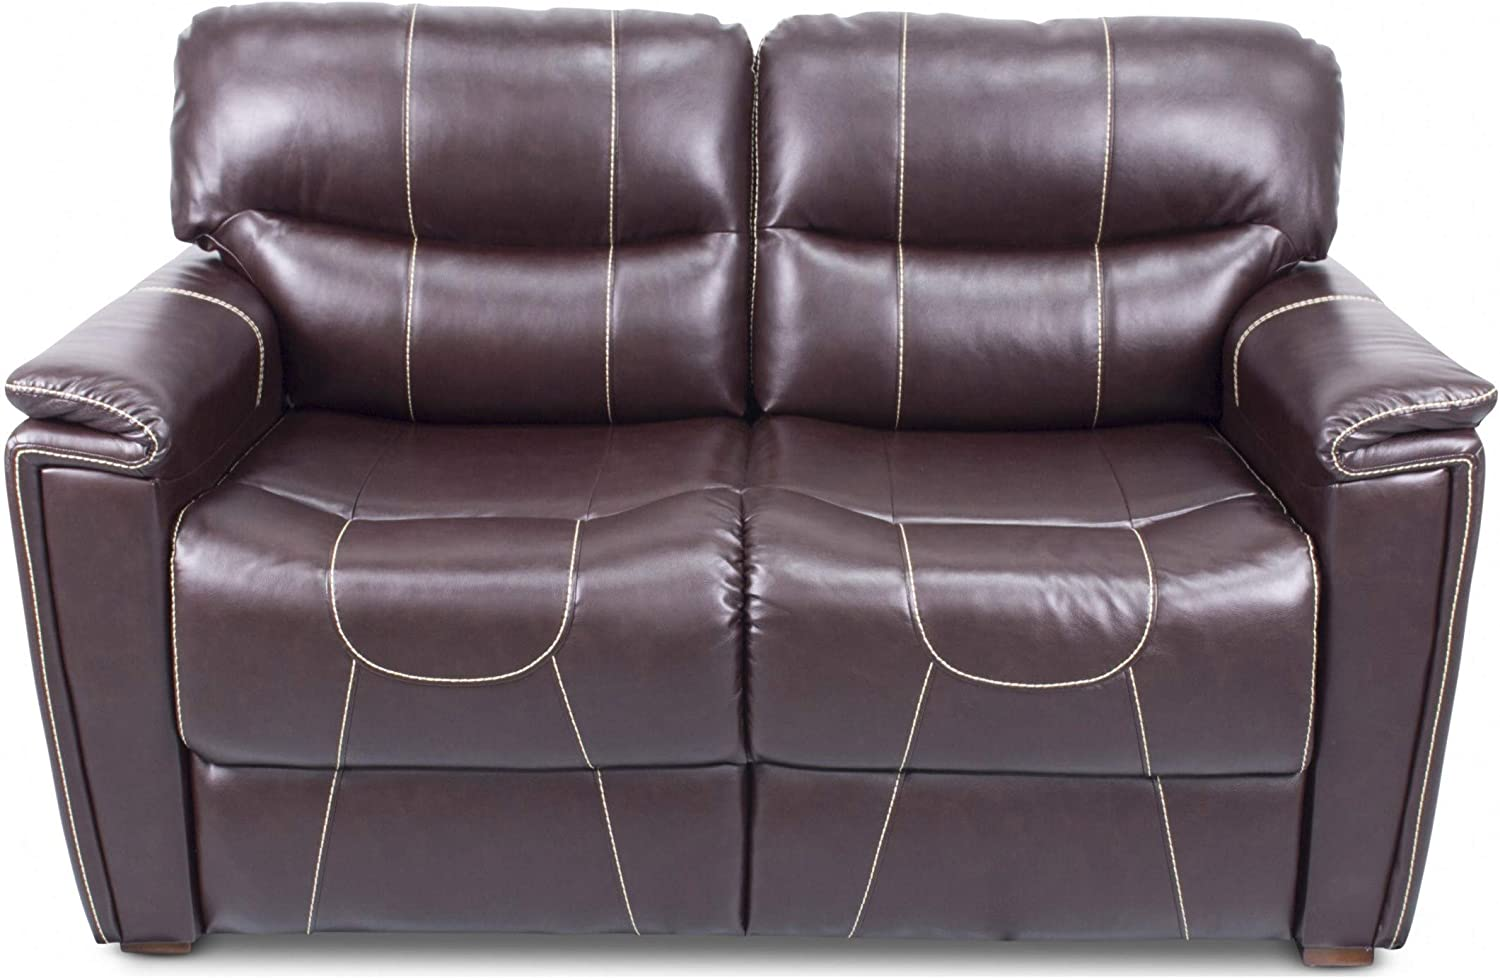 Best Rv Sofa Beds Of 2020 Complete Round Up Rv Expertise